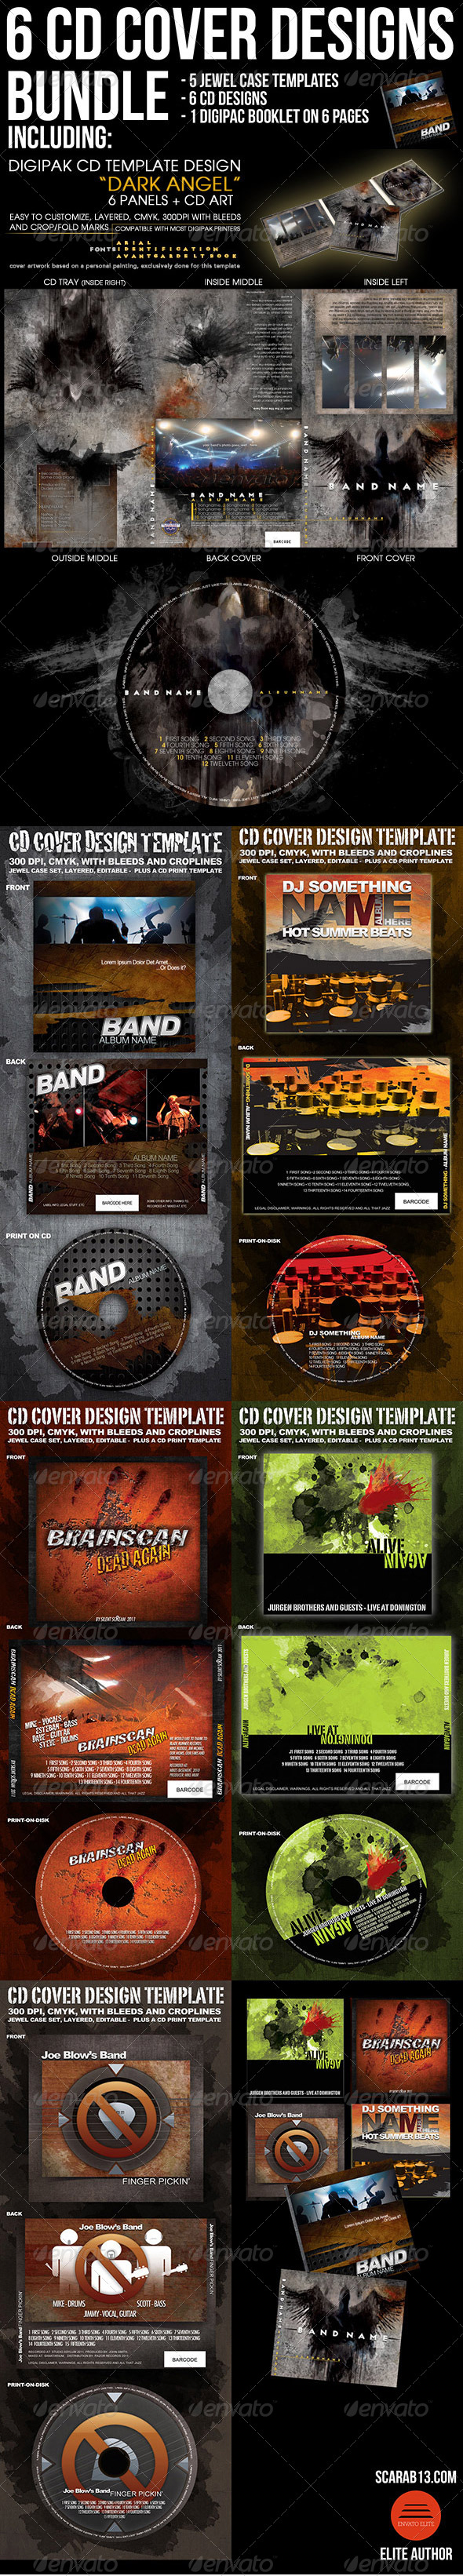 GraphicRiver 6 CD Cover Design Template Bundle 6992816